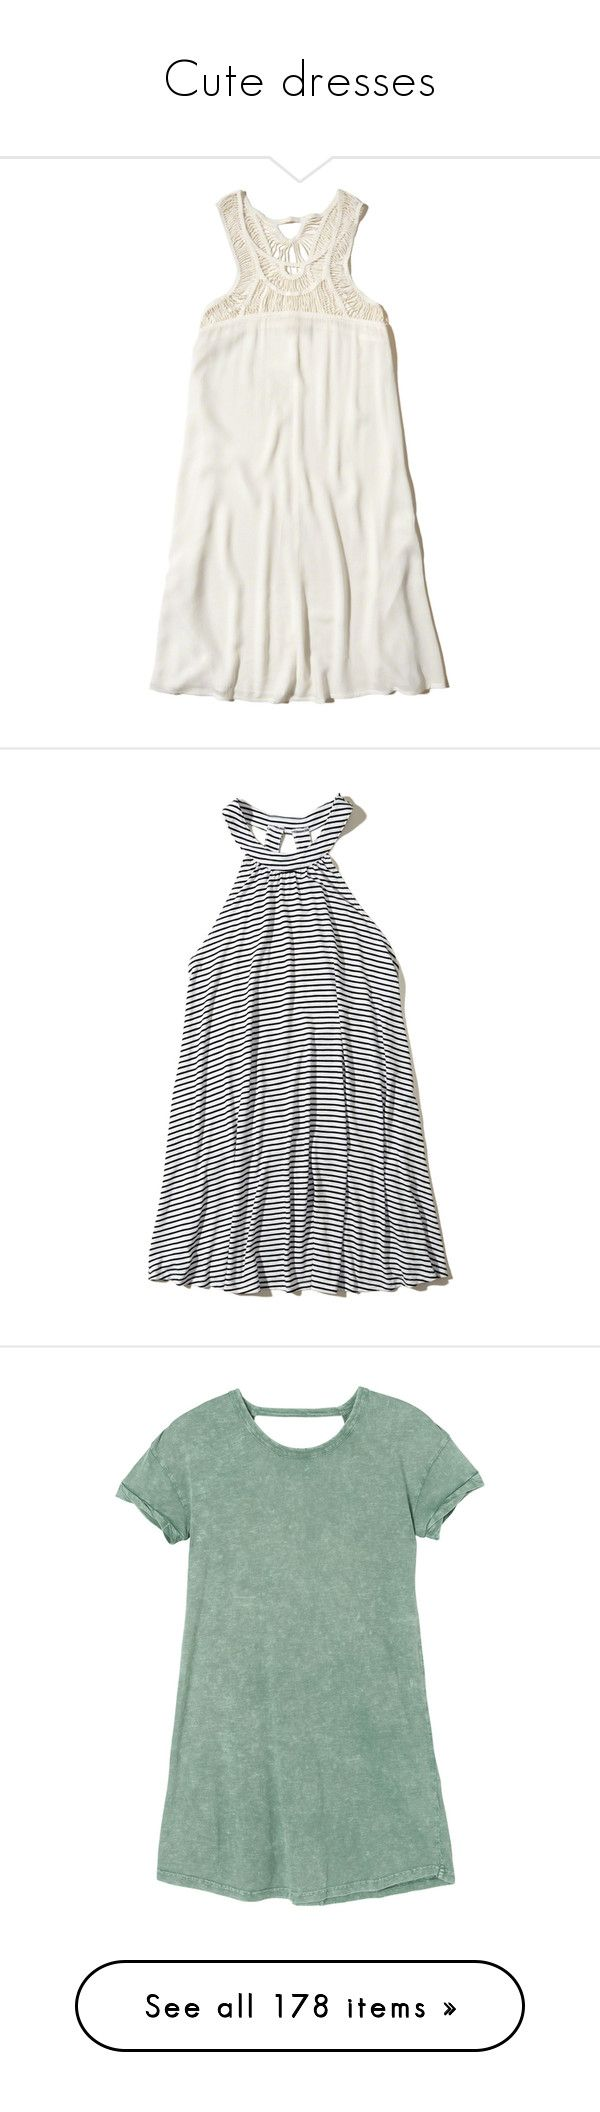 """""""Cute dresses"""" by zoejm ❤ liked on Polyvore featuring swimwear, cover-ups, white, beach cover up, beach swimwear, white beach wear, beach wear, white cover up swimwear, dresses and black stripe"""